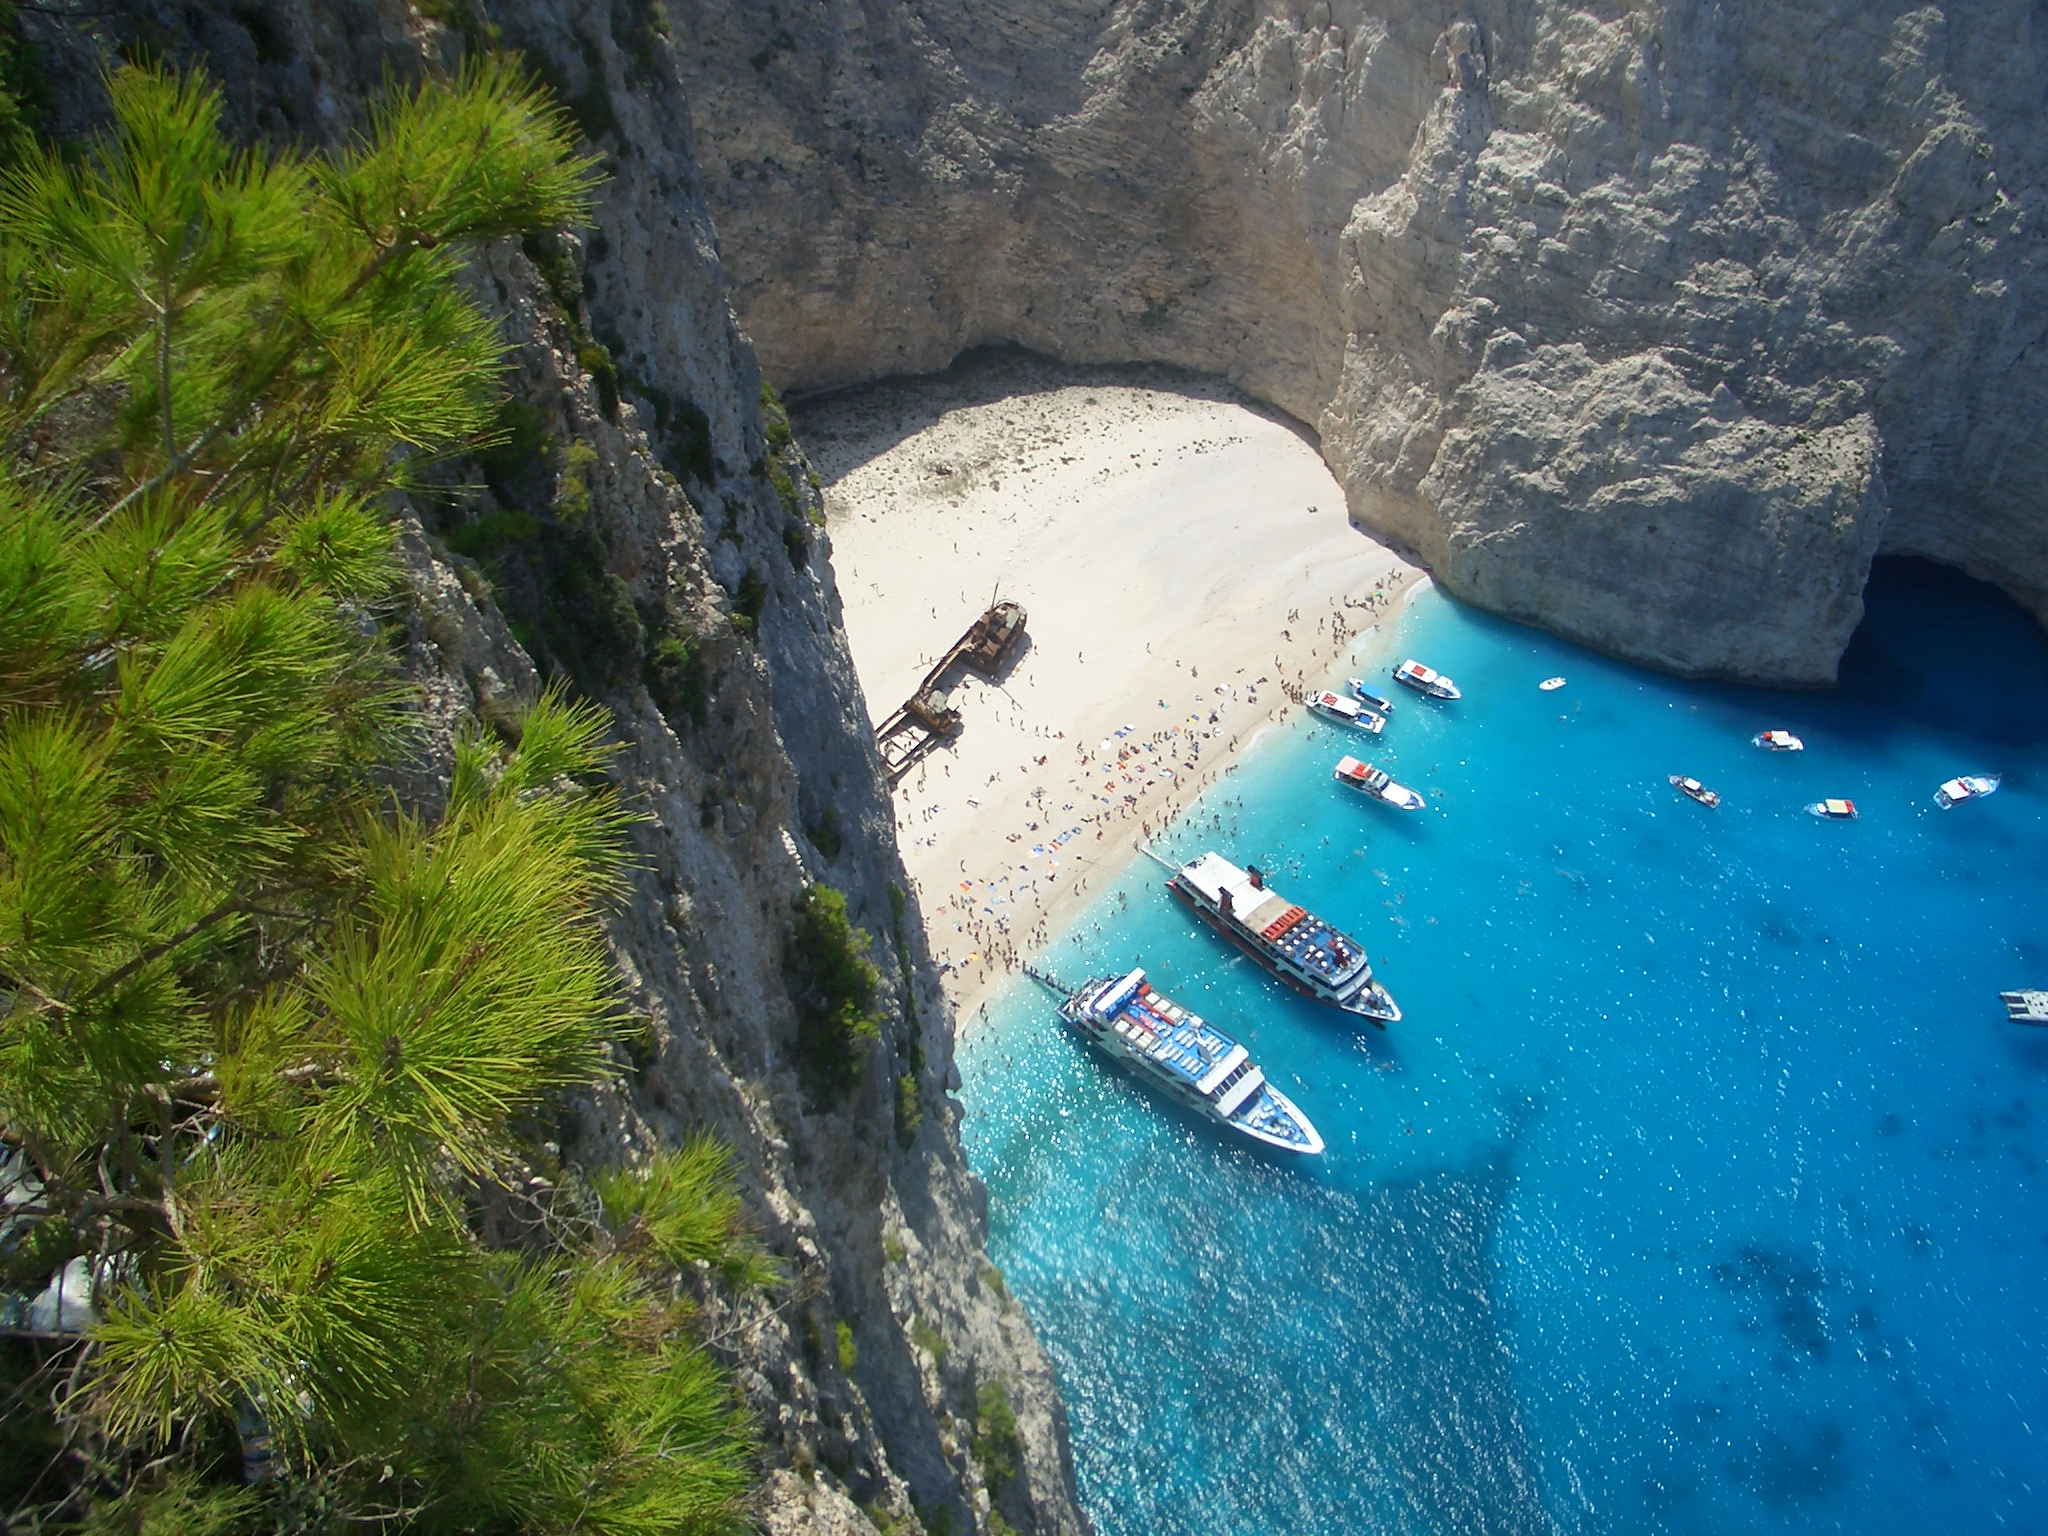 Secret beaches like this one abound on Zakynthos, one of many top destinations in Greece